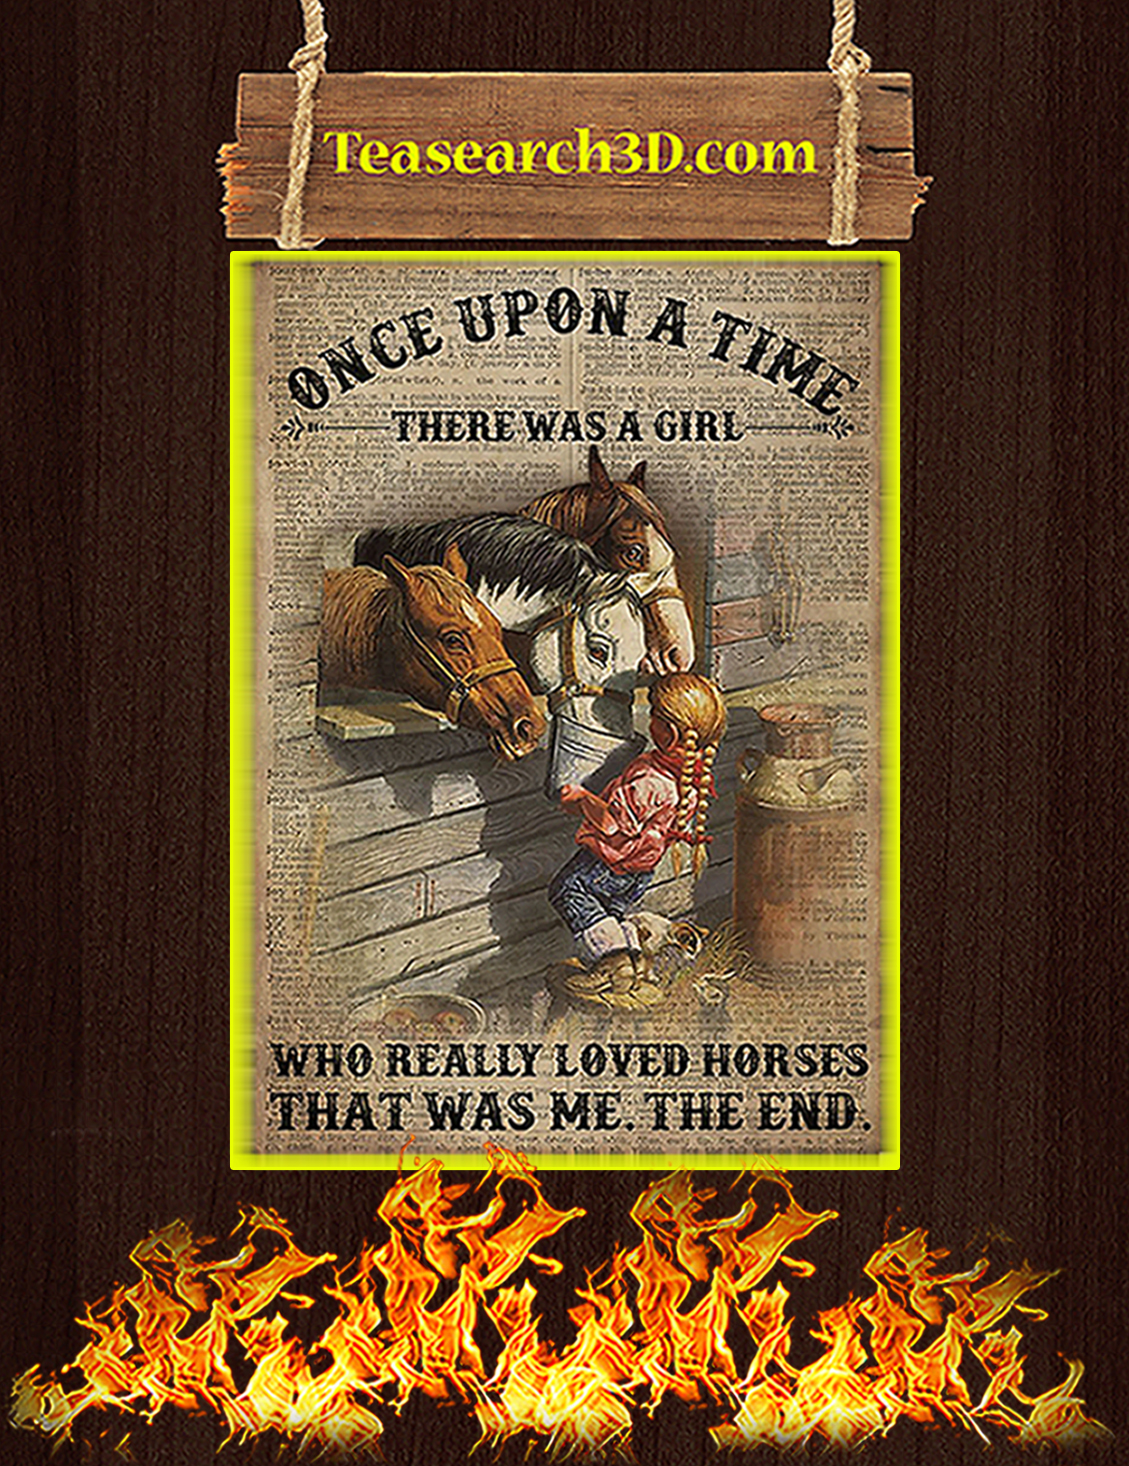 Once upon a time there was a girl who really loved horses poster A3